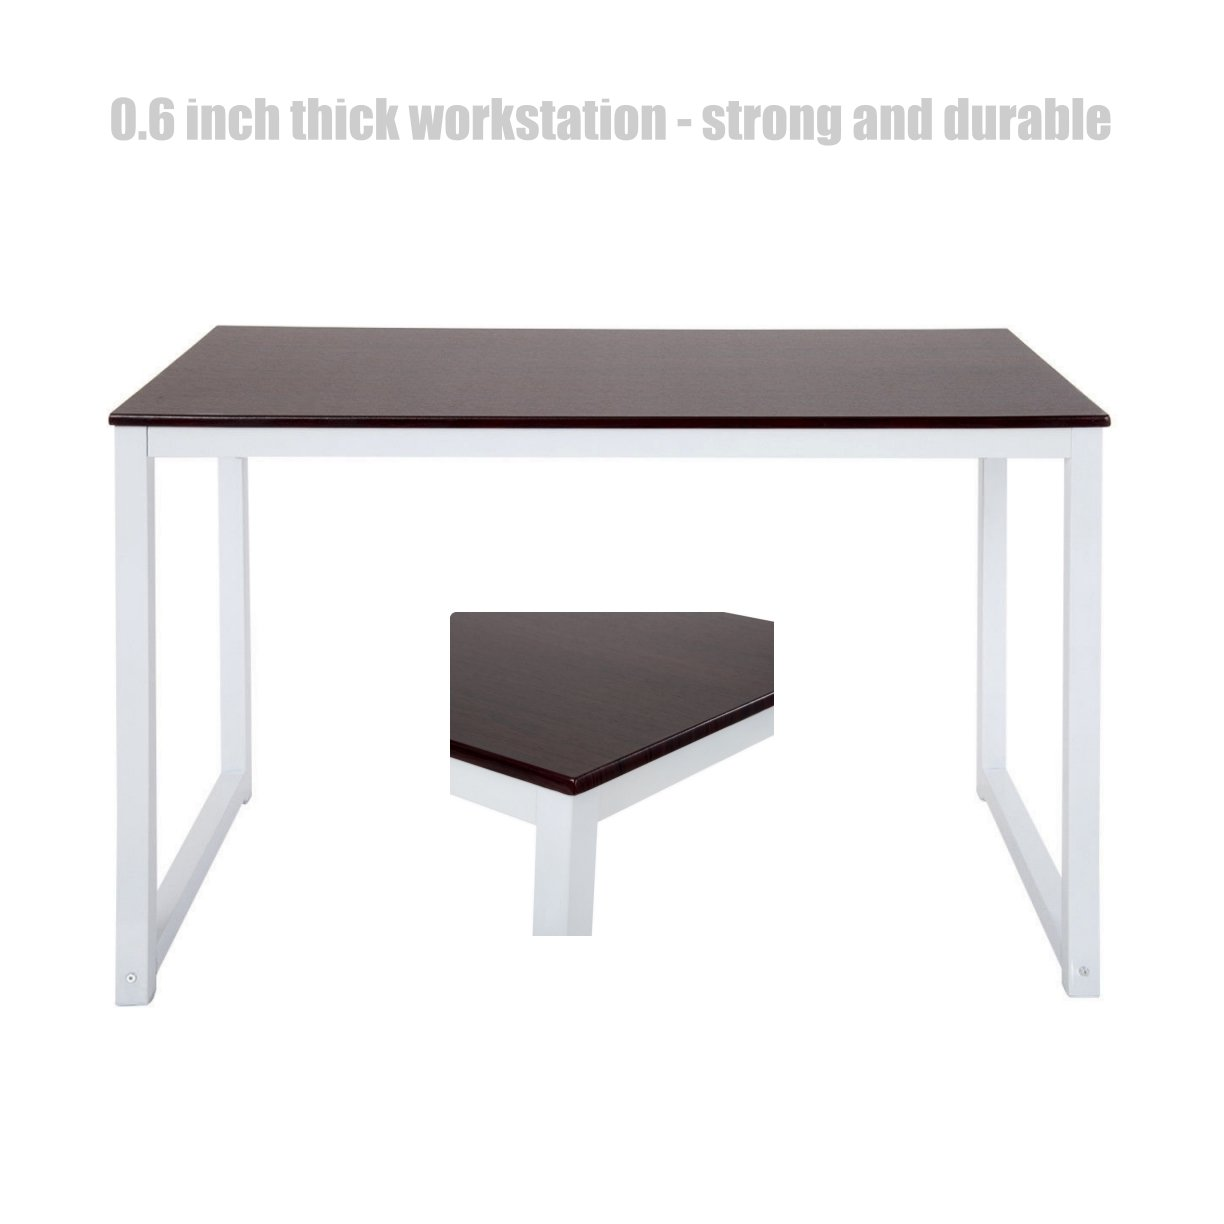 Amazon com modern design laptop computer wooden table solid powder coated steel frame durable workstation desk home office furniture brown 1387